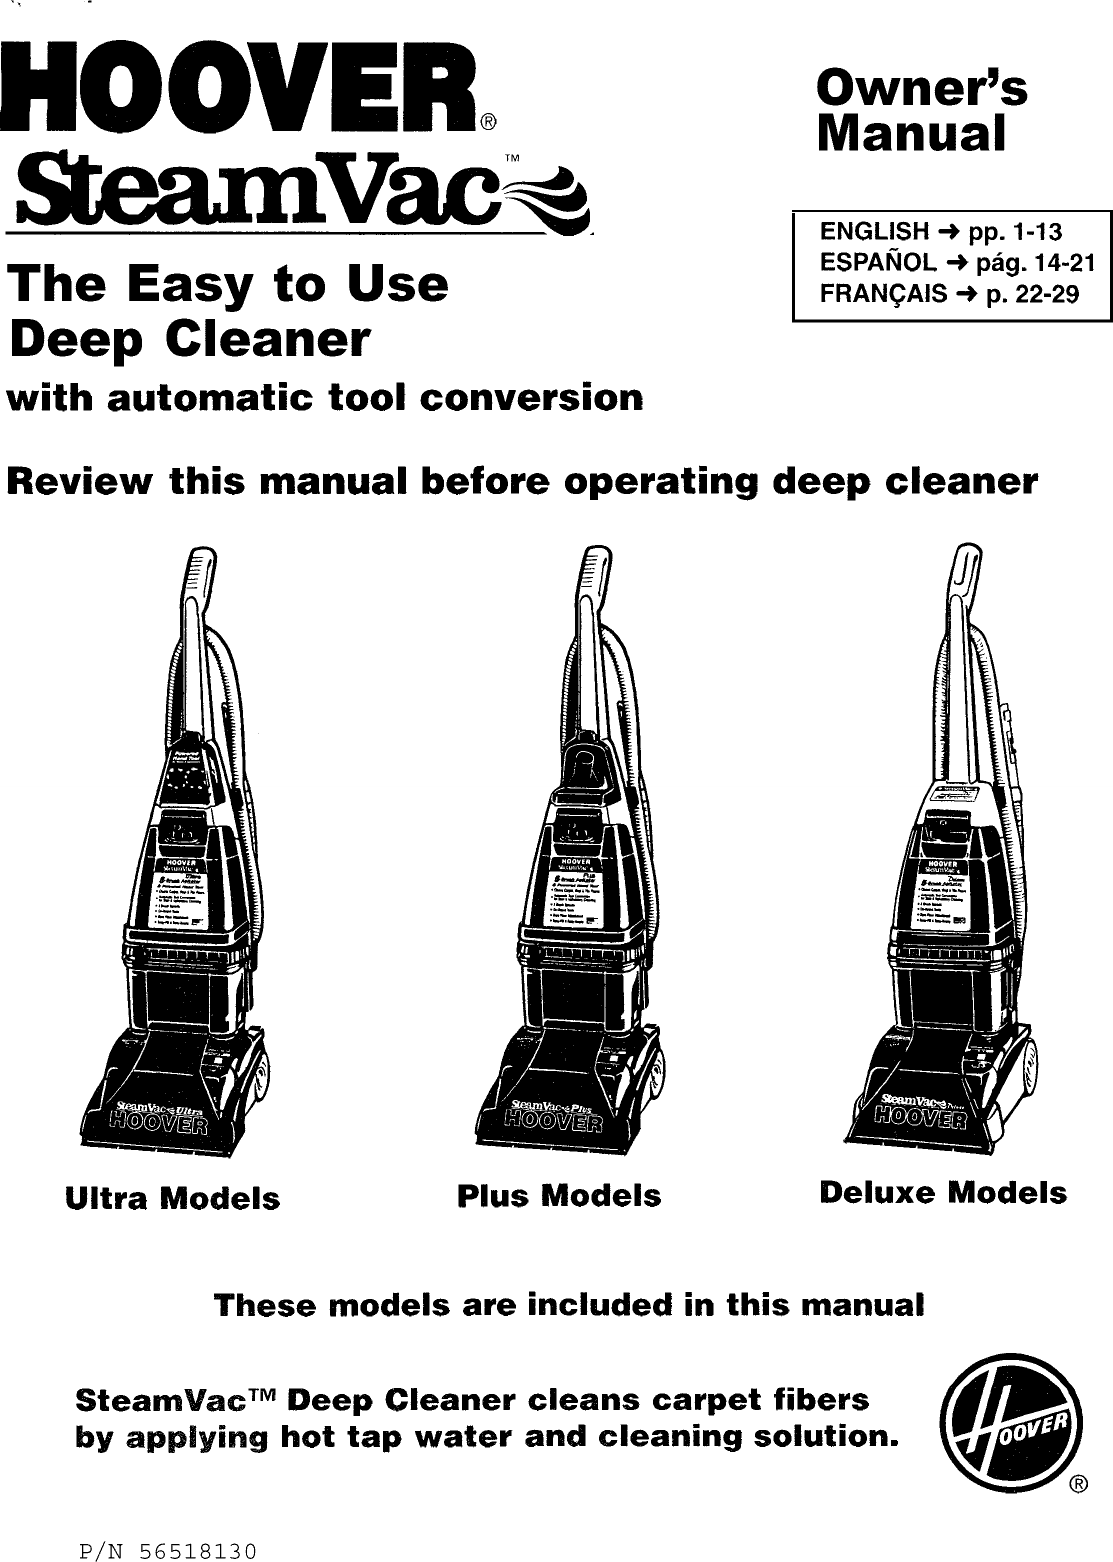 Hoover F5862 900 User Manual STEAM VAC UPRIGHT Manuals And